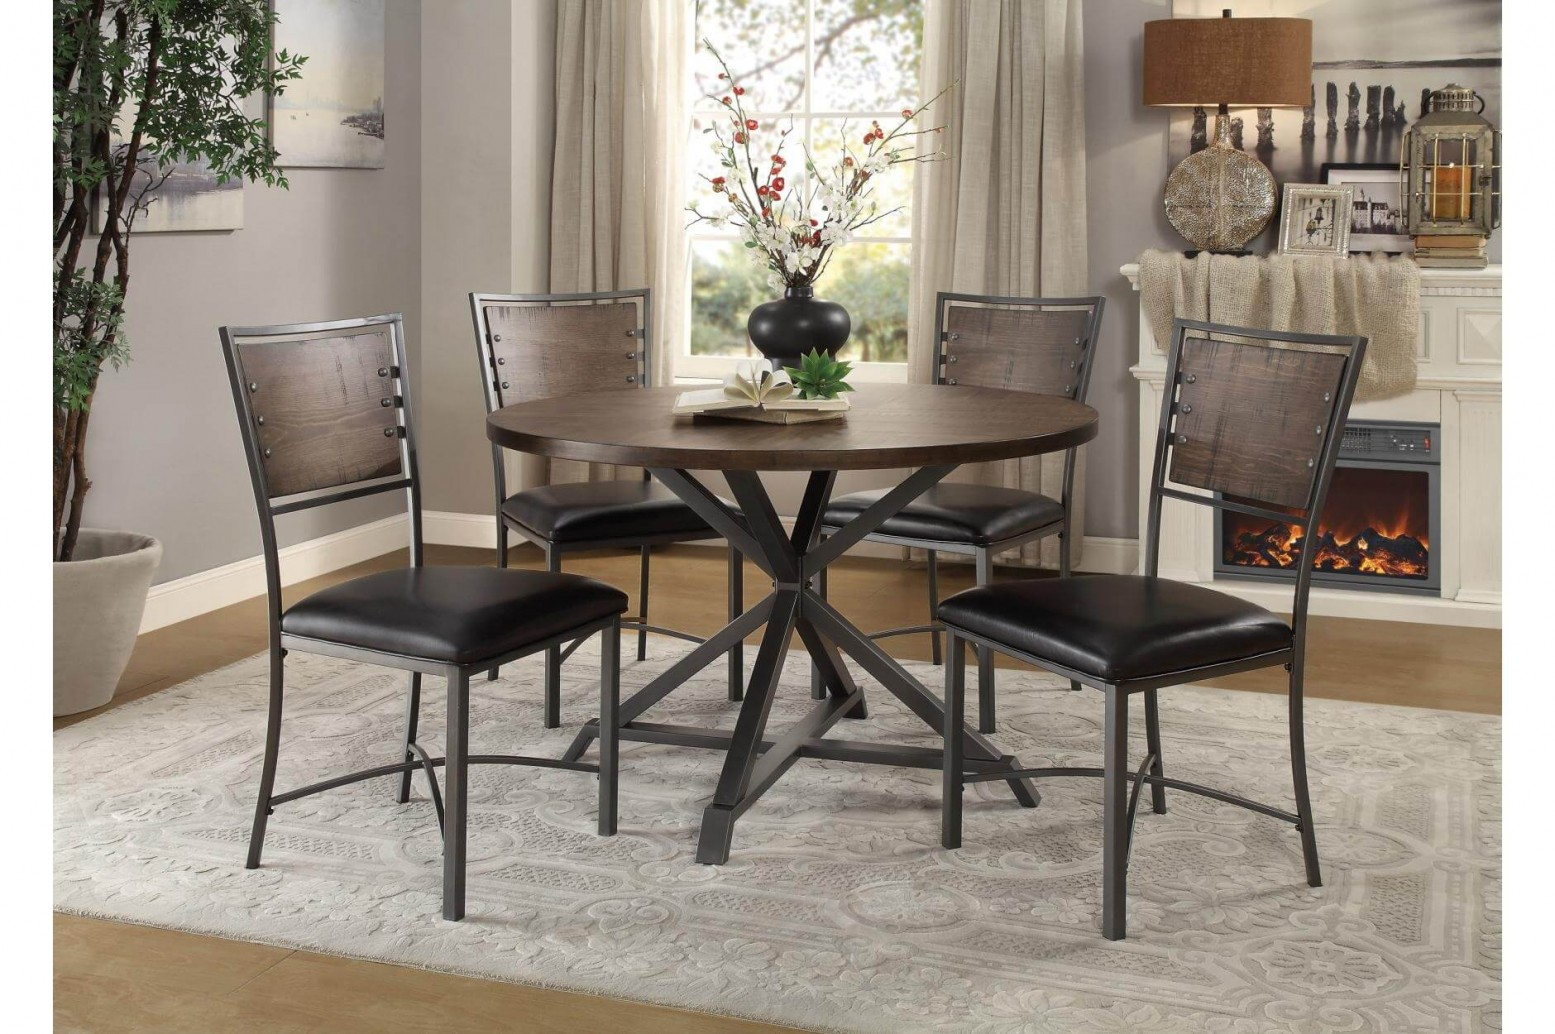 Fideo Rustic Industrial Dining Room Set